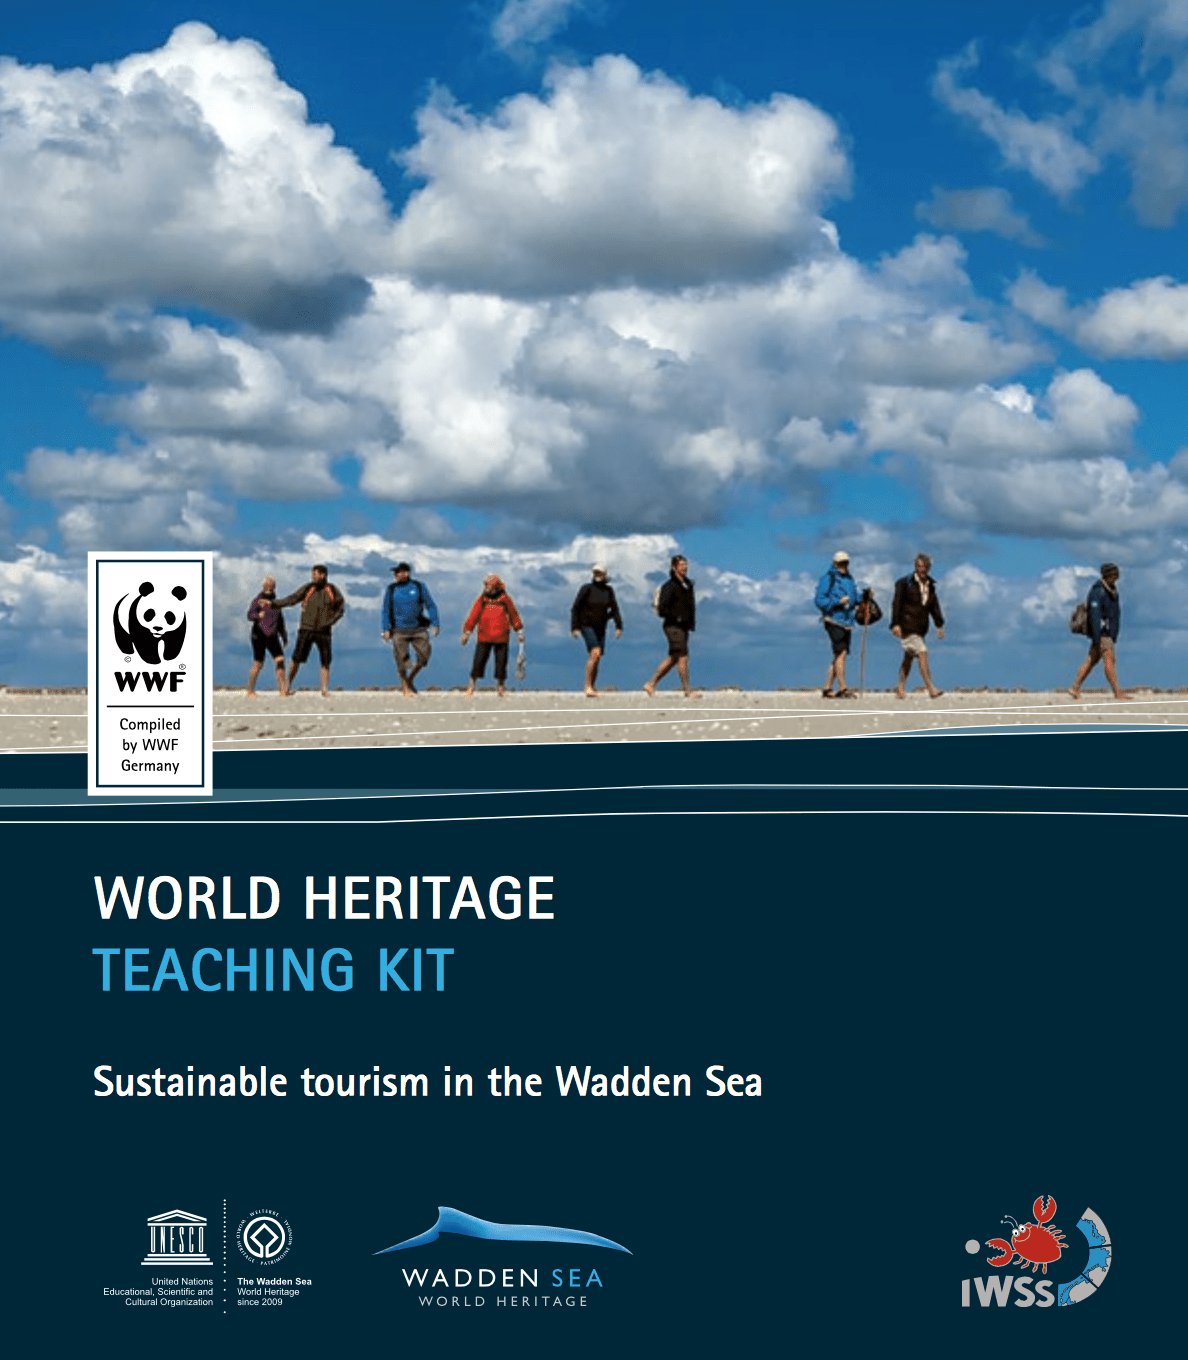 New Teaching Resource For Sustainable Tourism In The